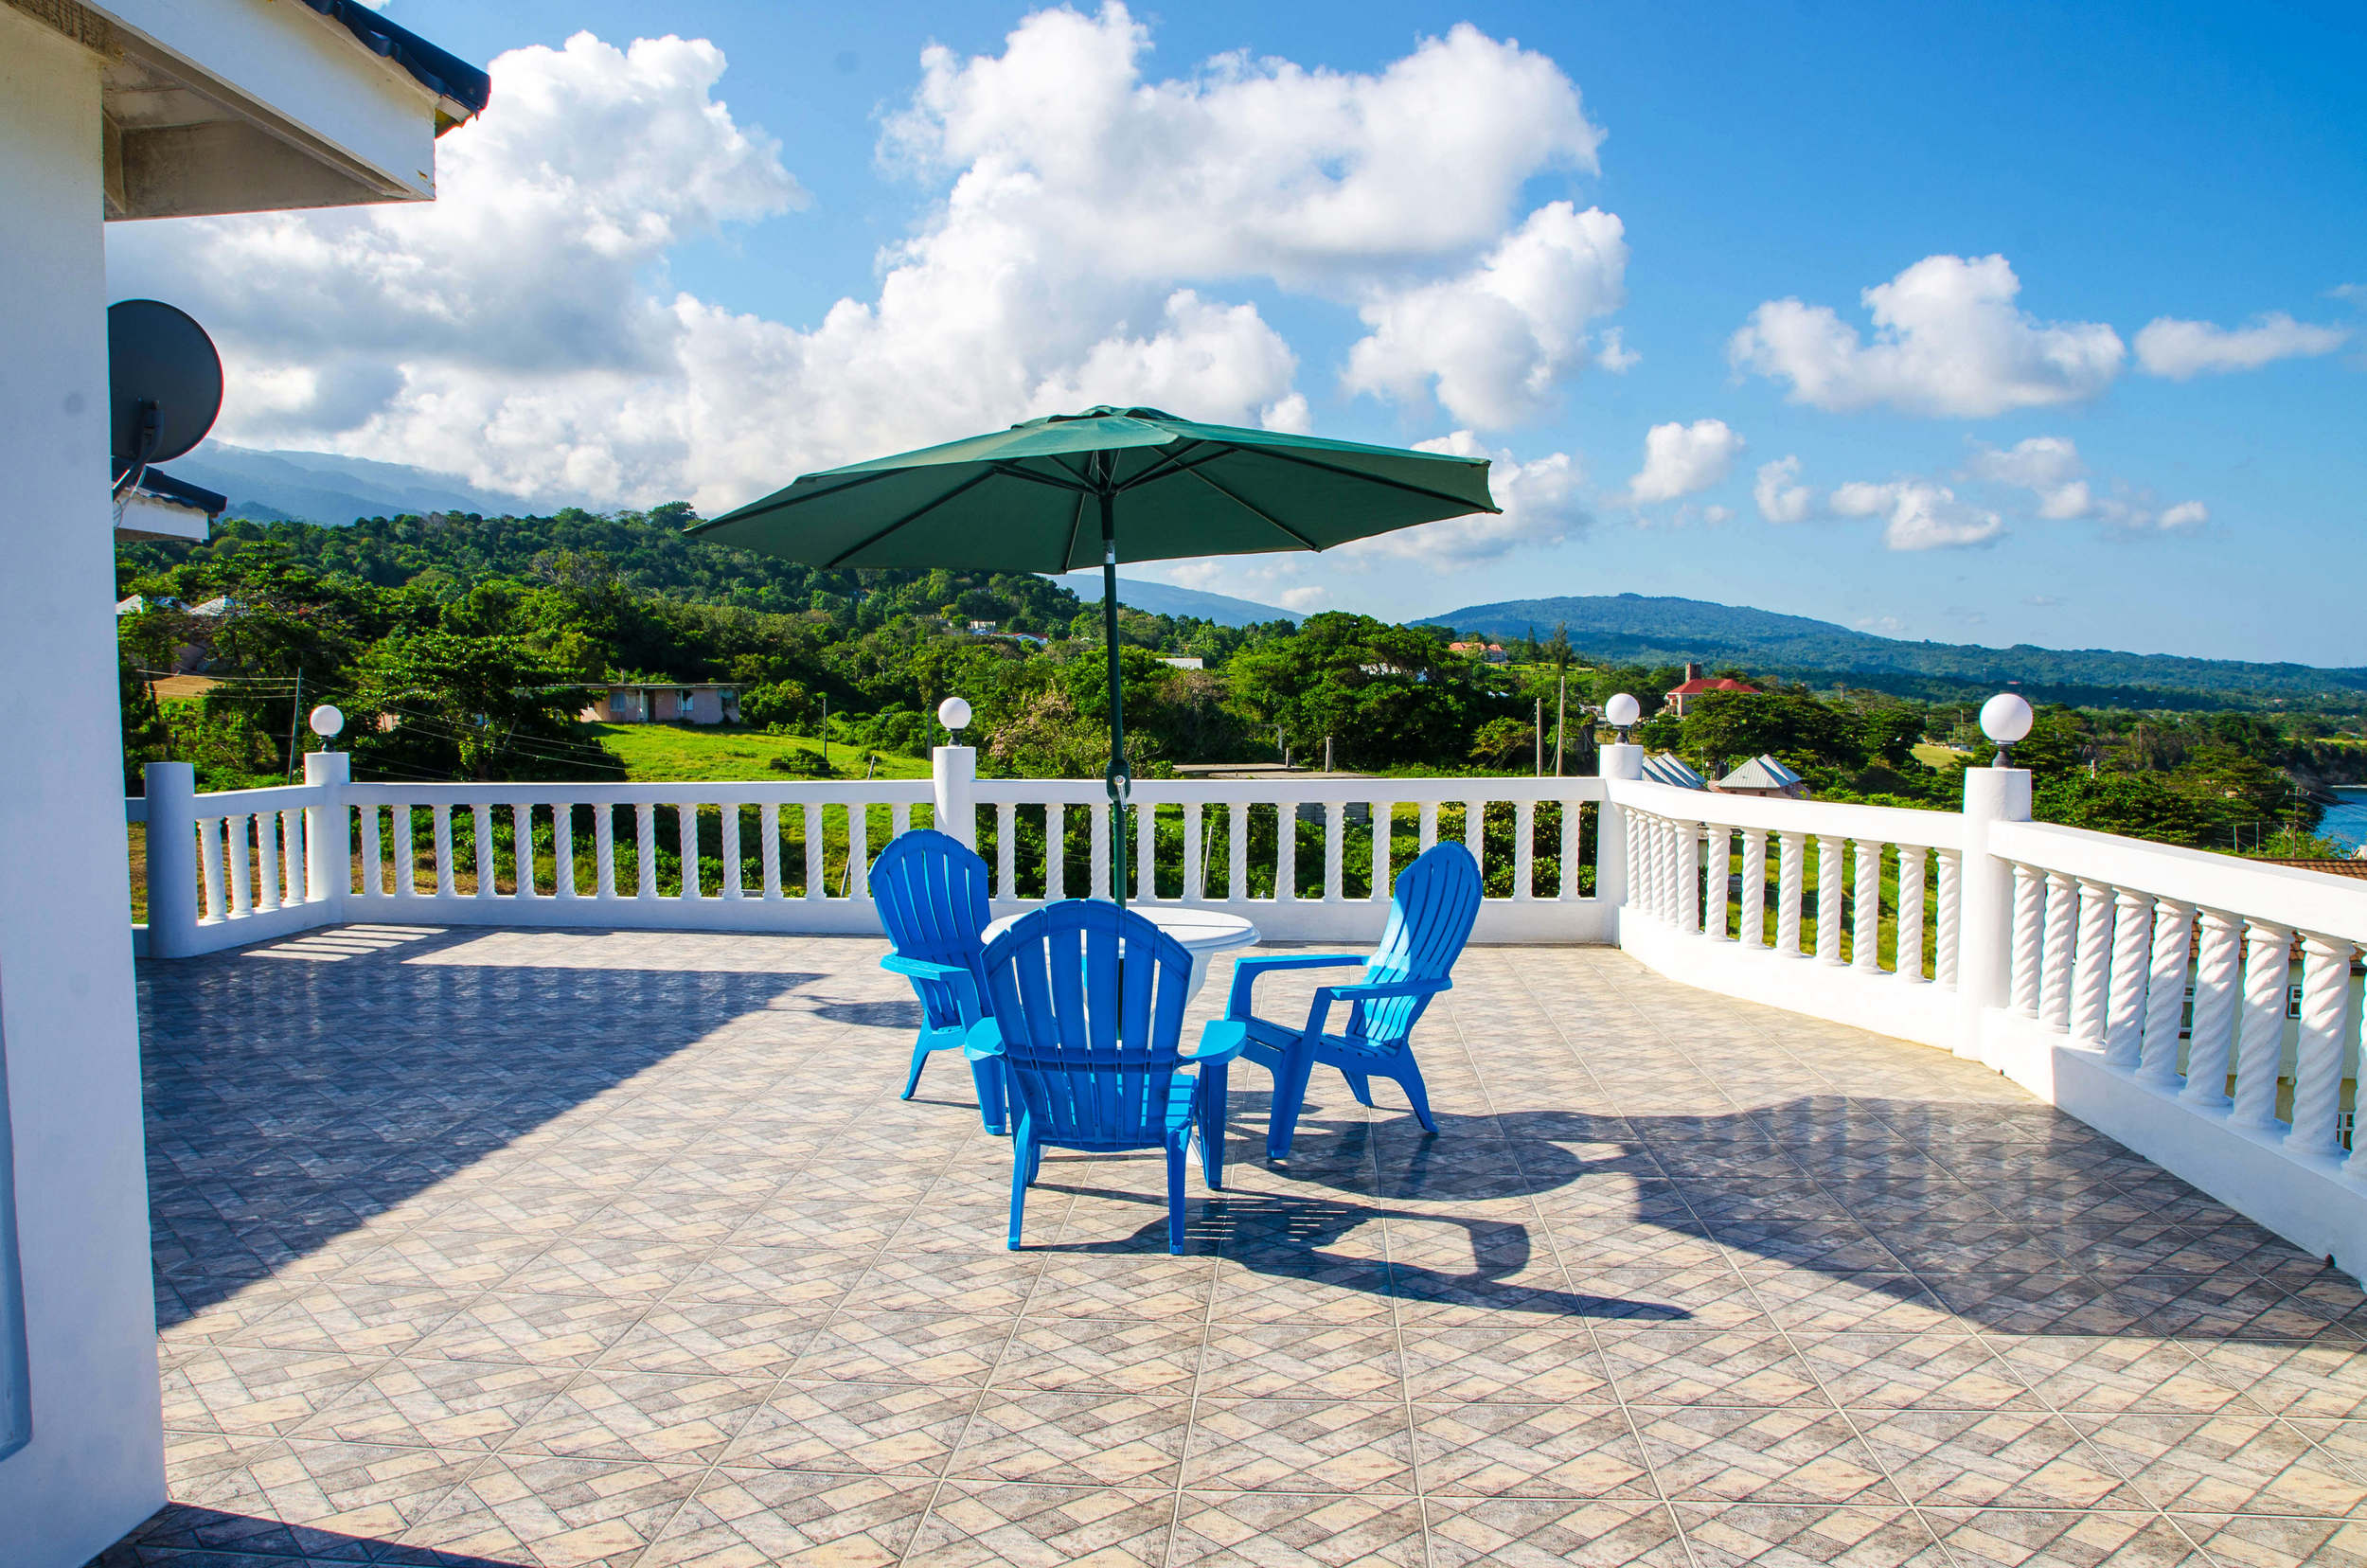 Relax with a cup of Jamaican coffee on the patio ...